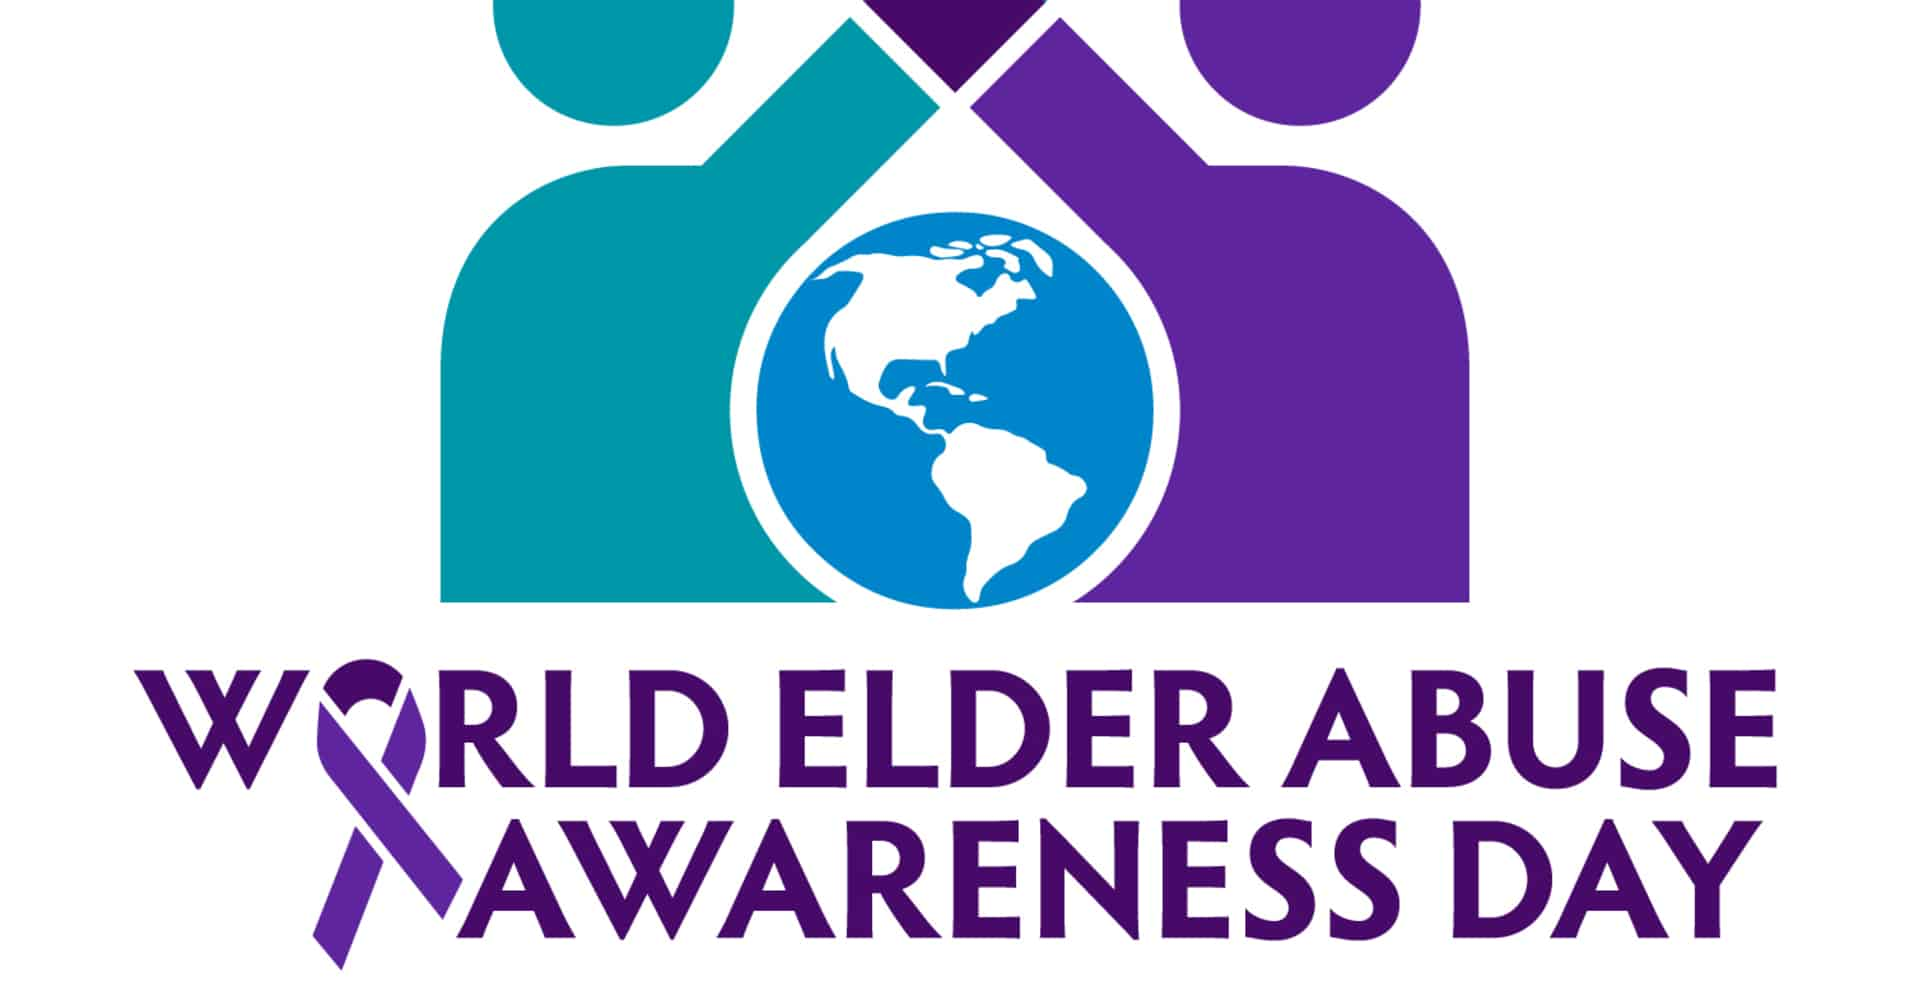 June 15 is Elder Abuse Awareness Day in Tennessee